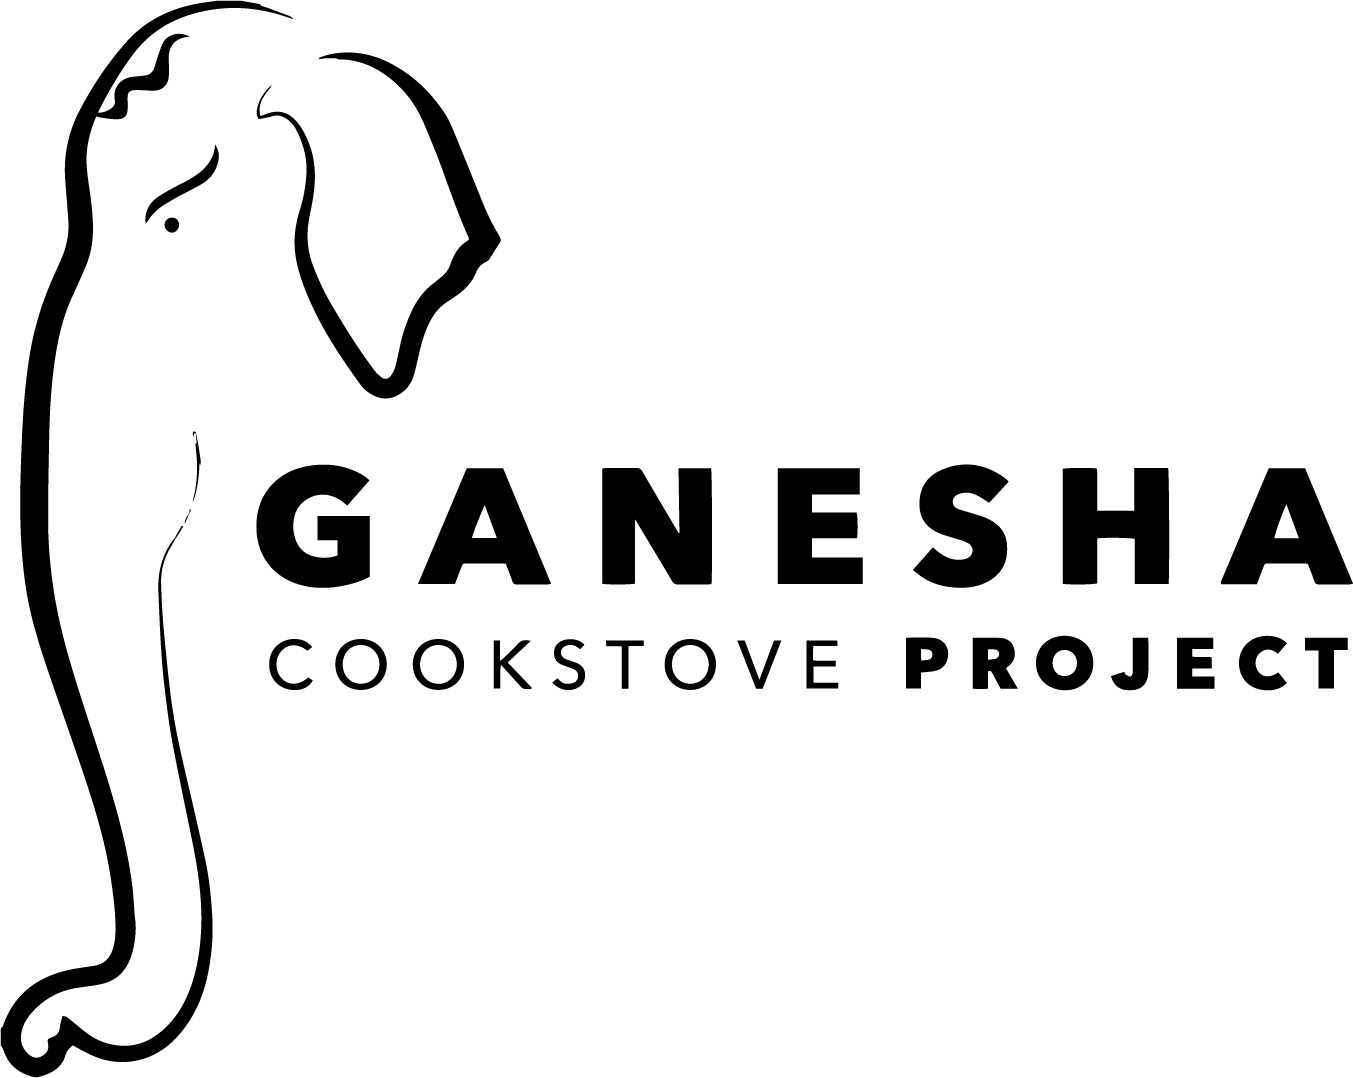 Ganesha Cookstove Project